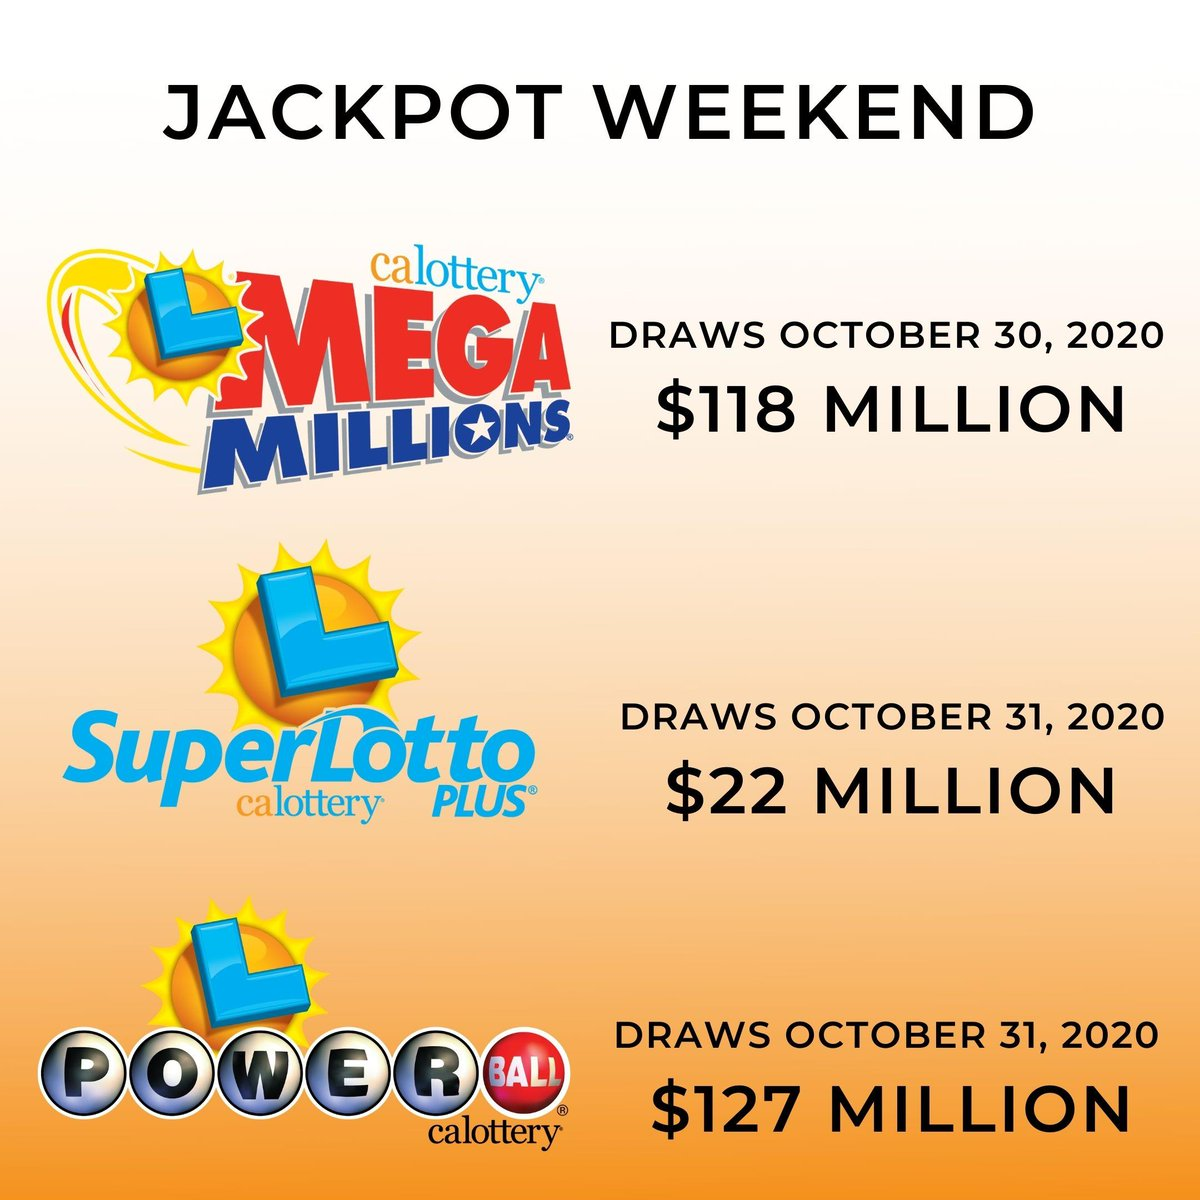 Check out these jackpots! Which game are you playing this weekend? #CALottery #JackpotAlert #MegaMillions #SuperLottoPlus #Powerball https://t.co/YlPRbEJhkq